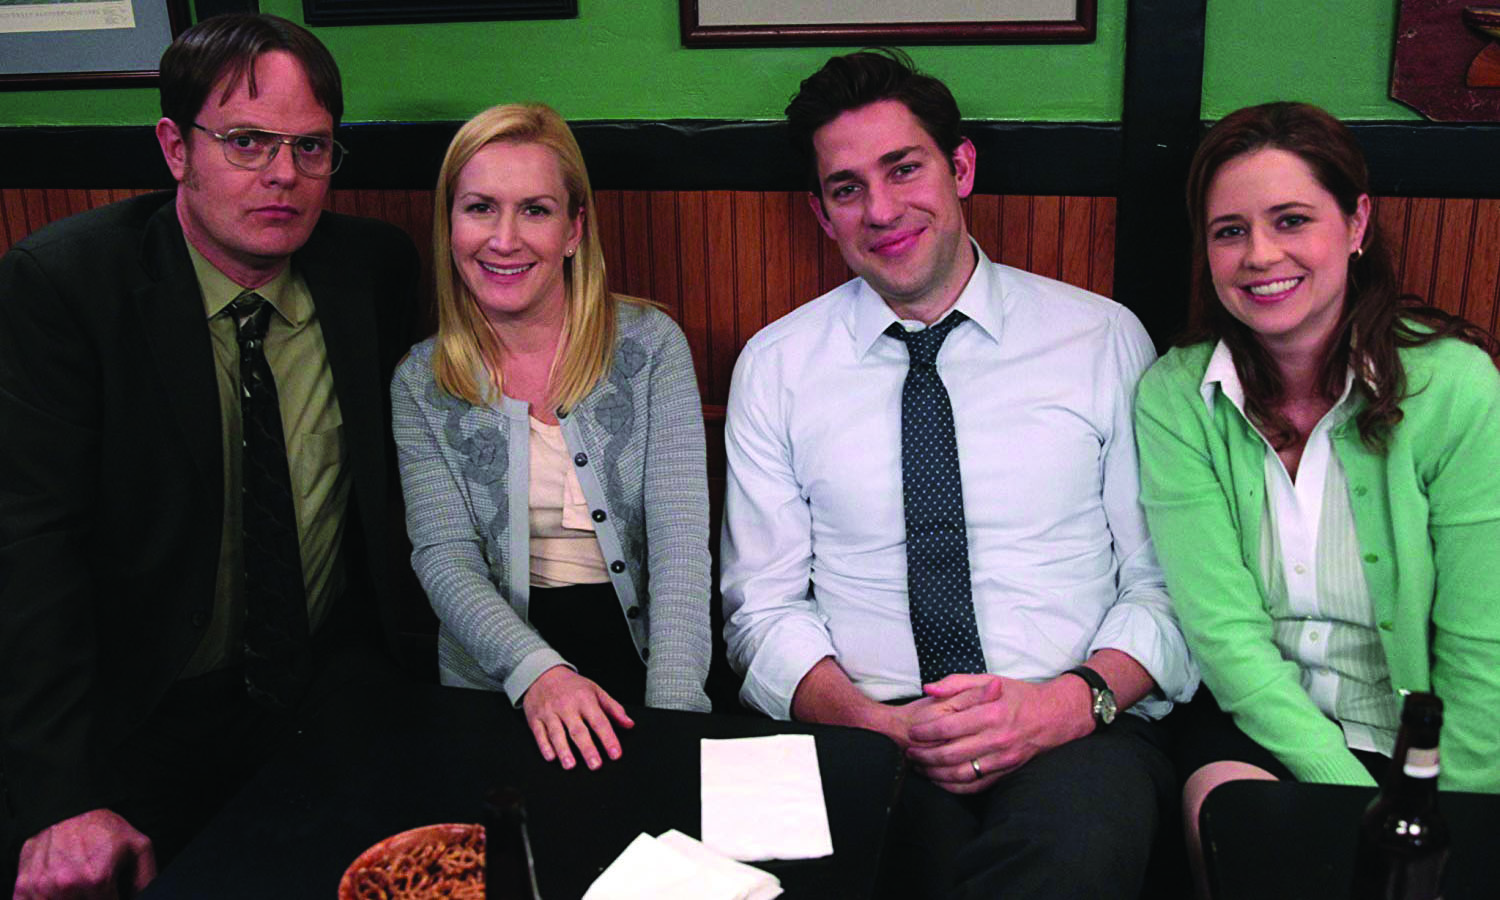 Dwight, Angela, Jim, and Pam sit together. Photo courtesy of IMDb.